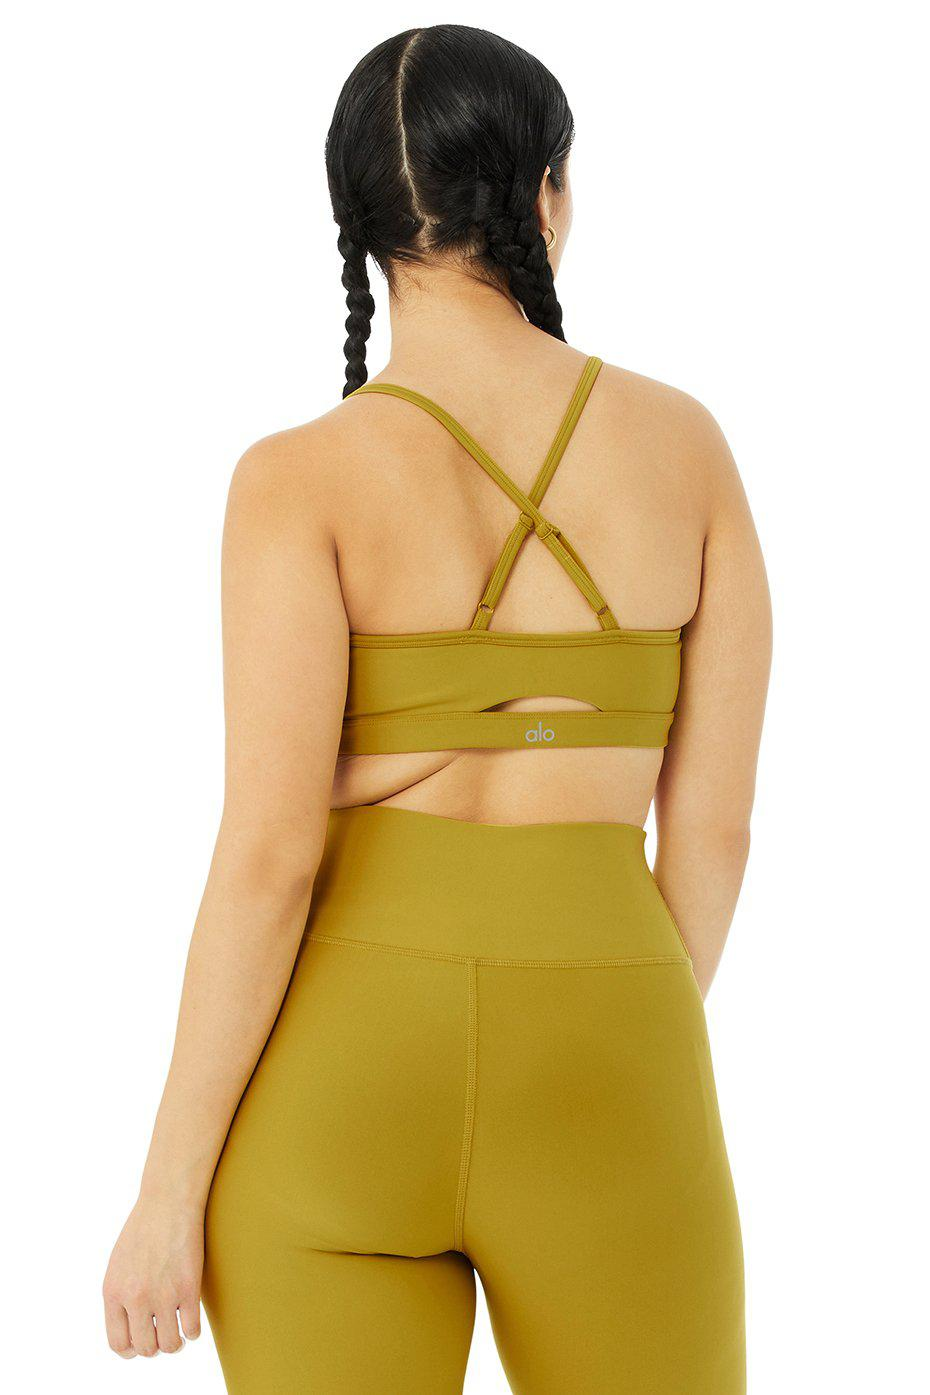 Airlift Intrigue Bra - Chartreuse 10